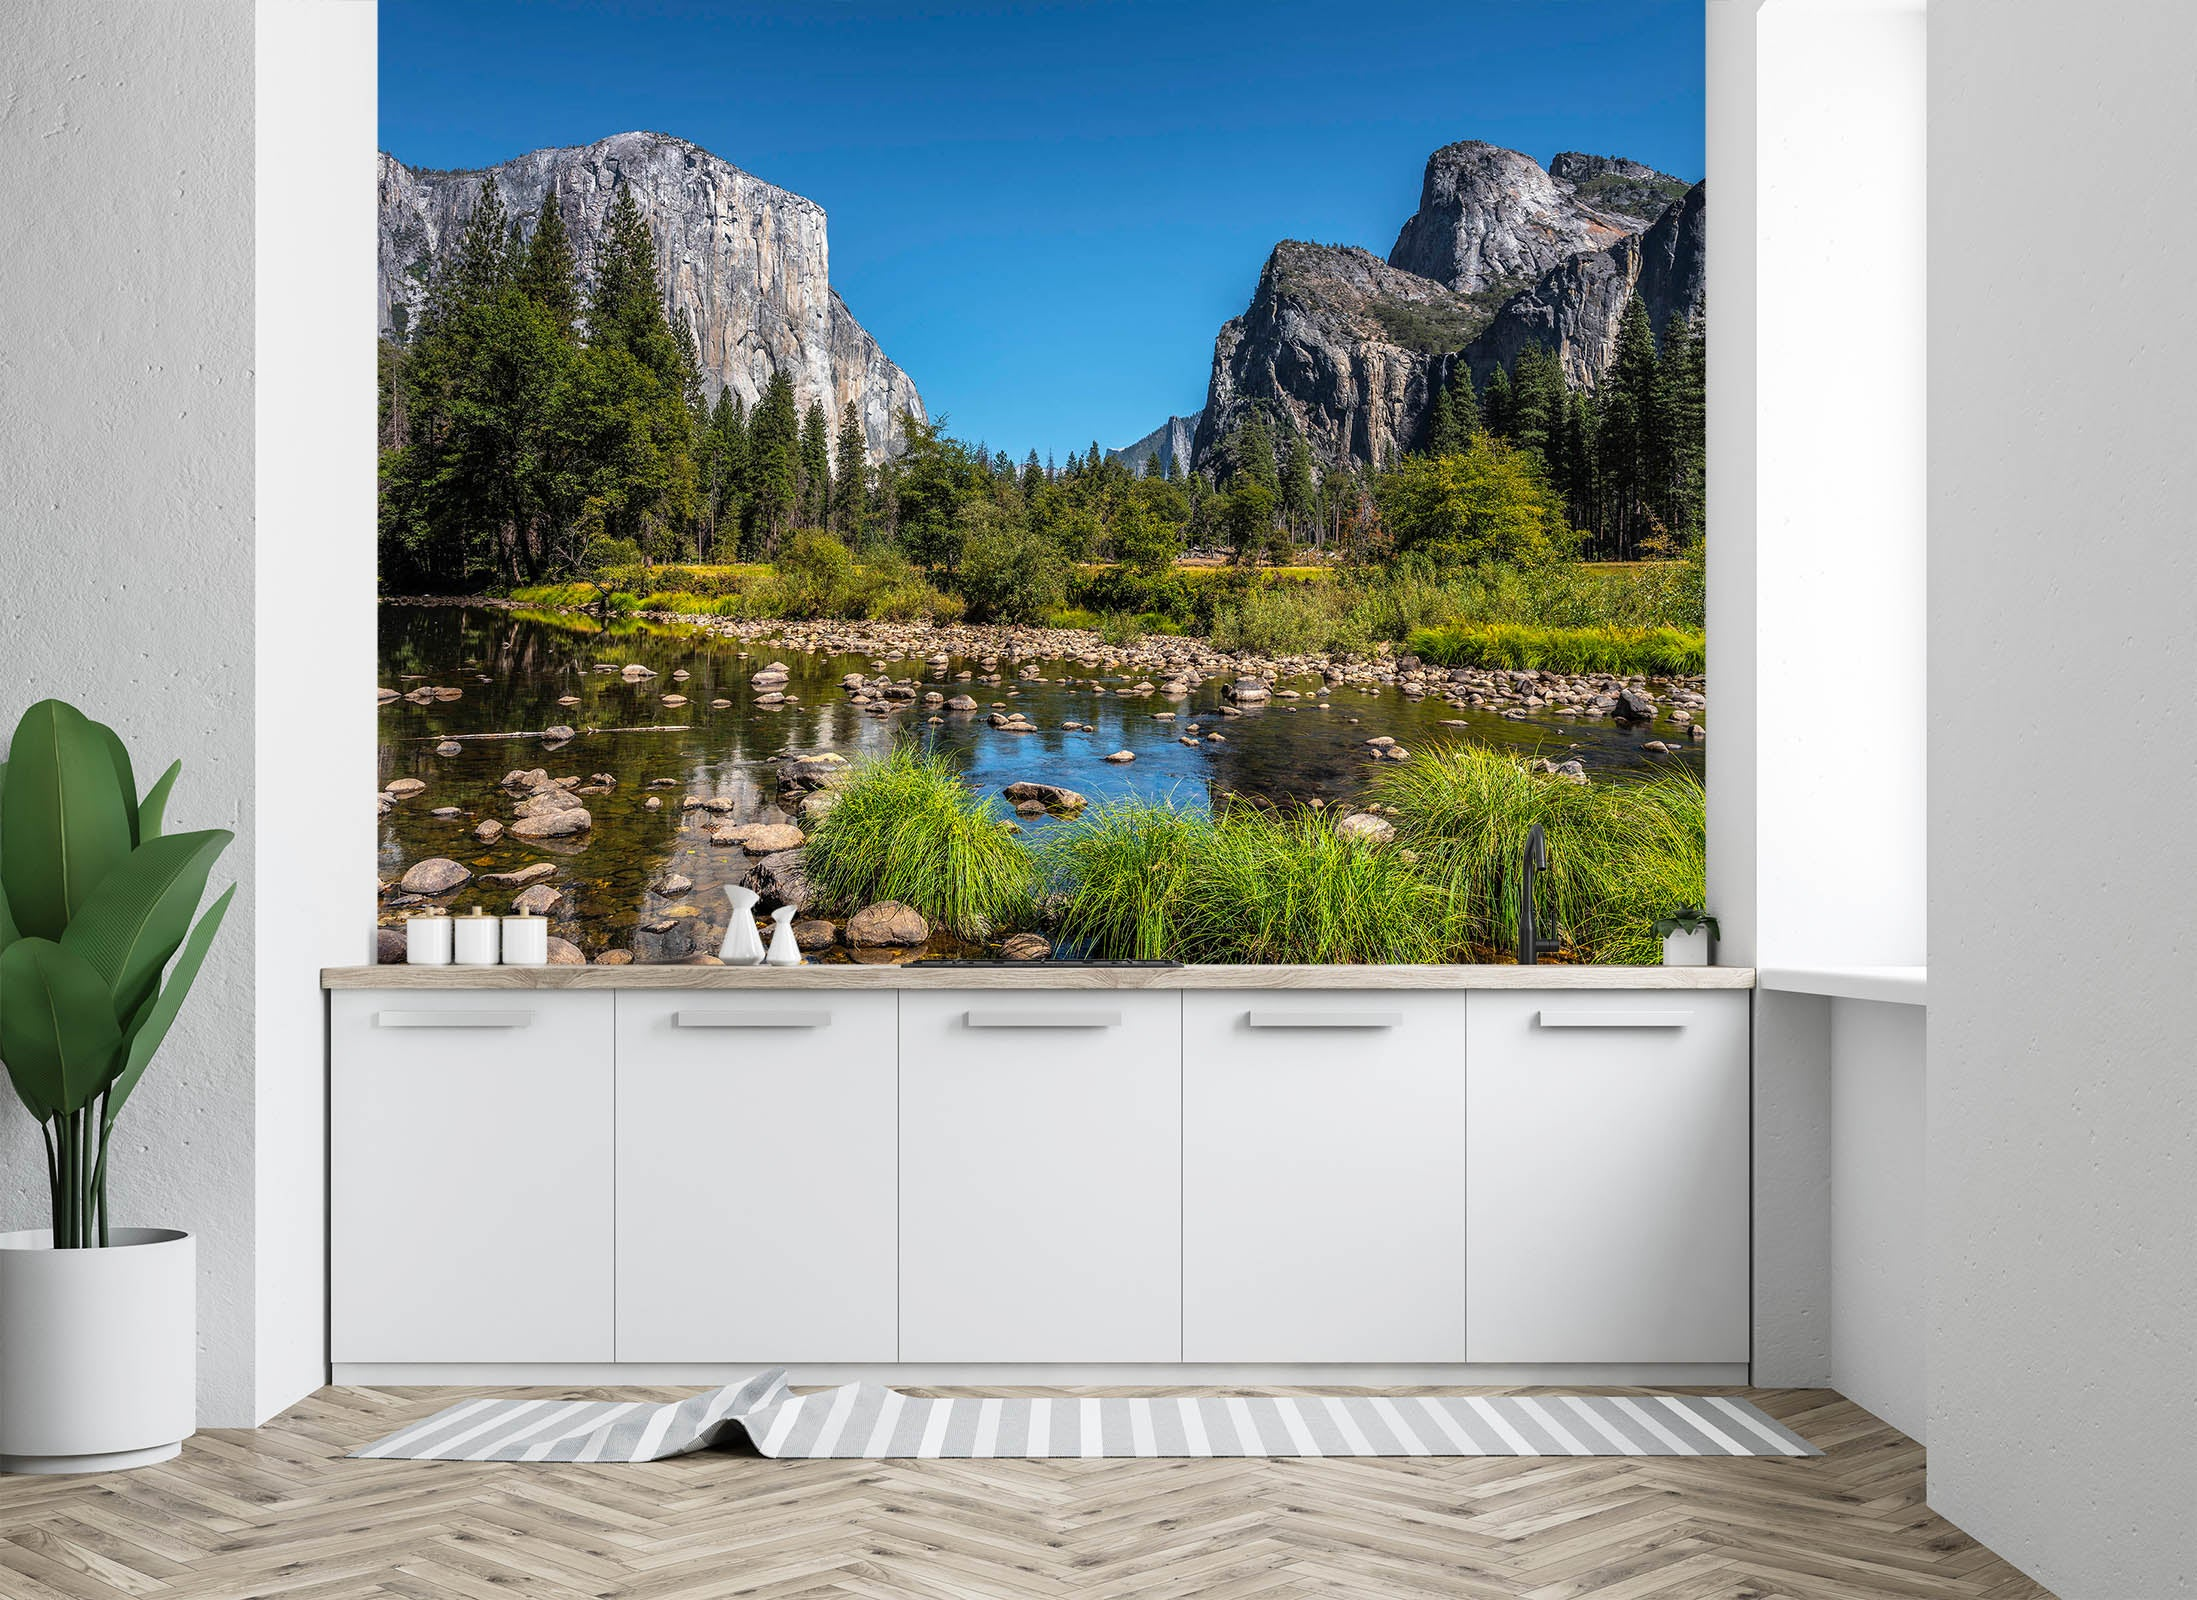 3D Forest Pond 1455 Marco Carmassi Wall Mural Wall Murals